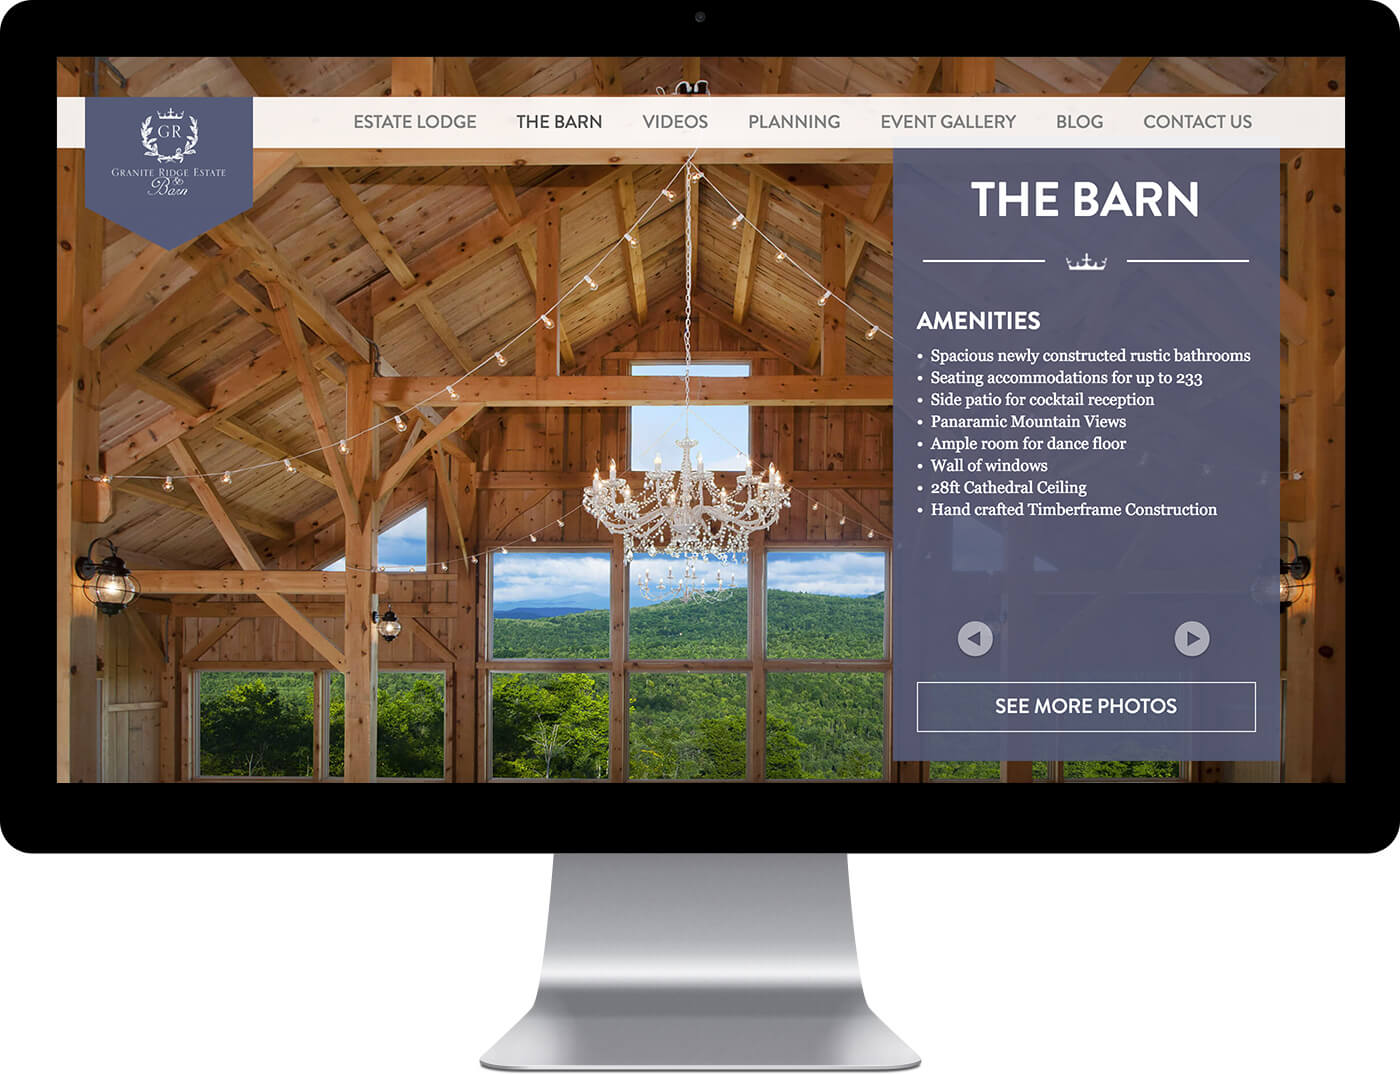 Granite Ridge Estate custom website design example on a desktop monitor